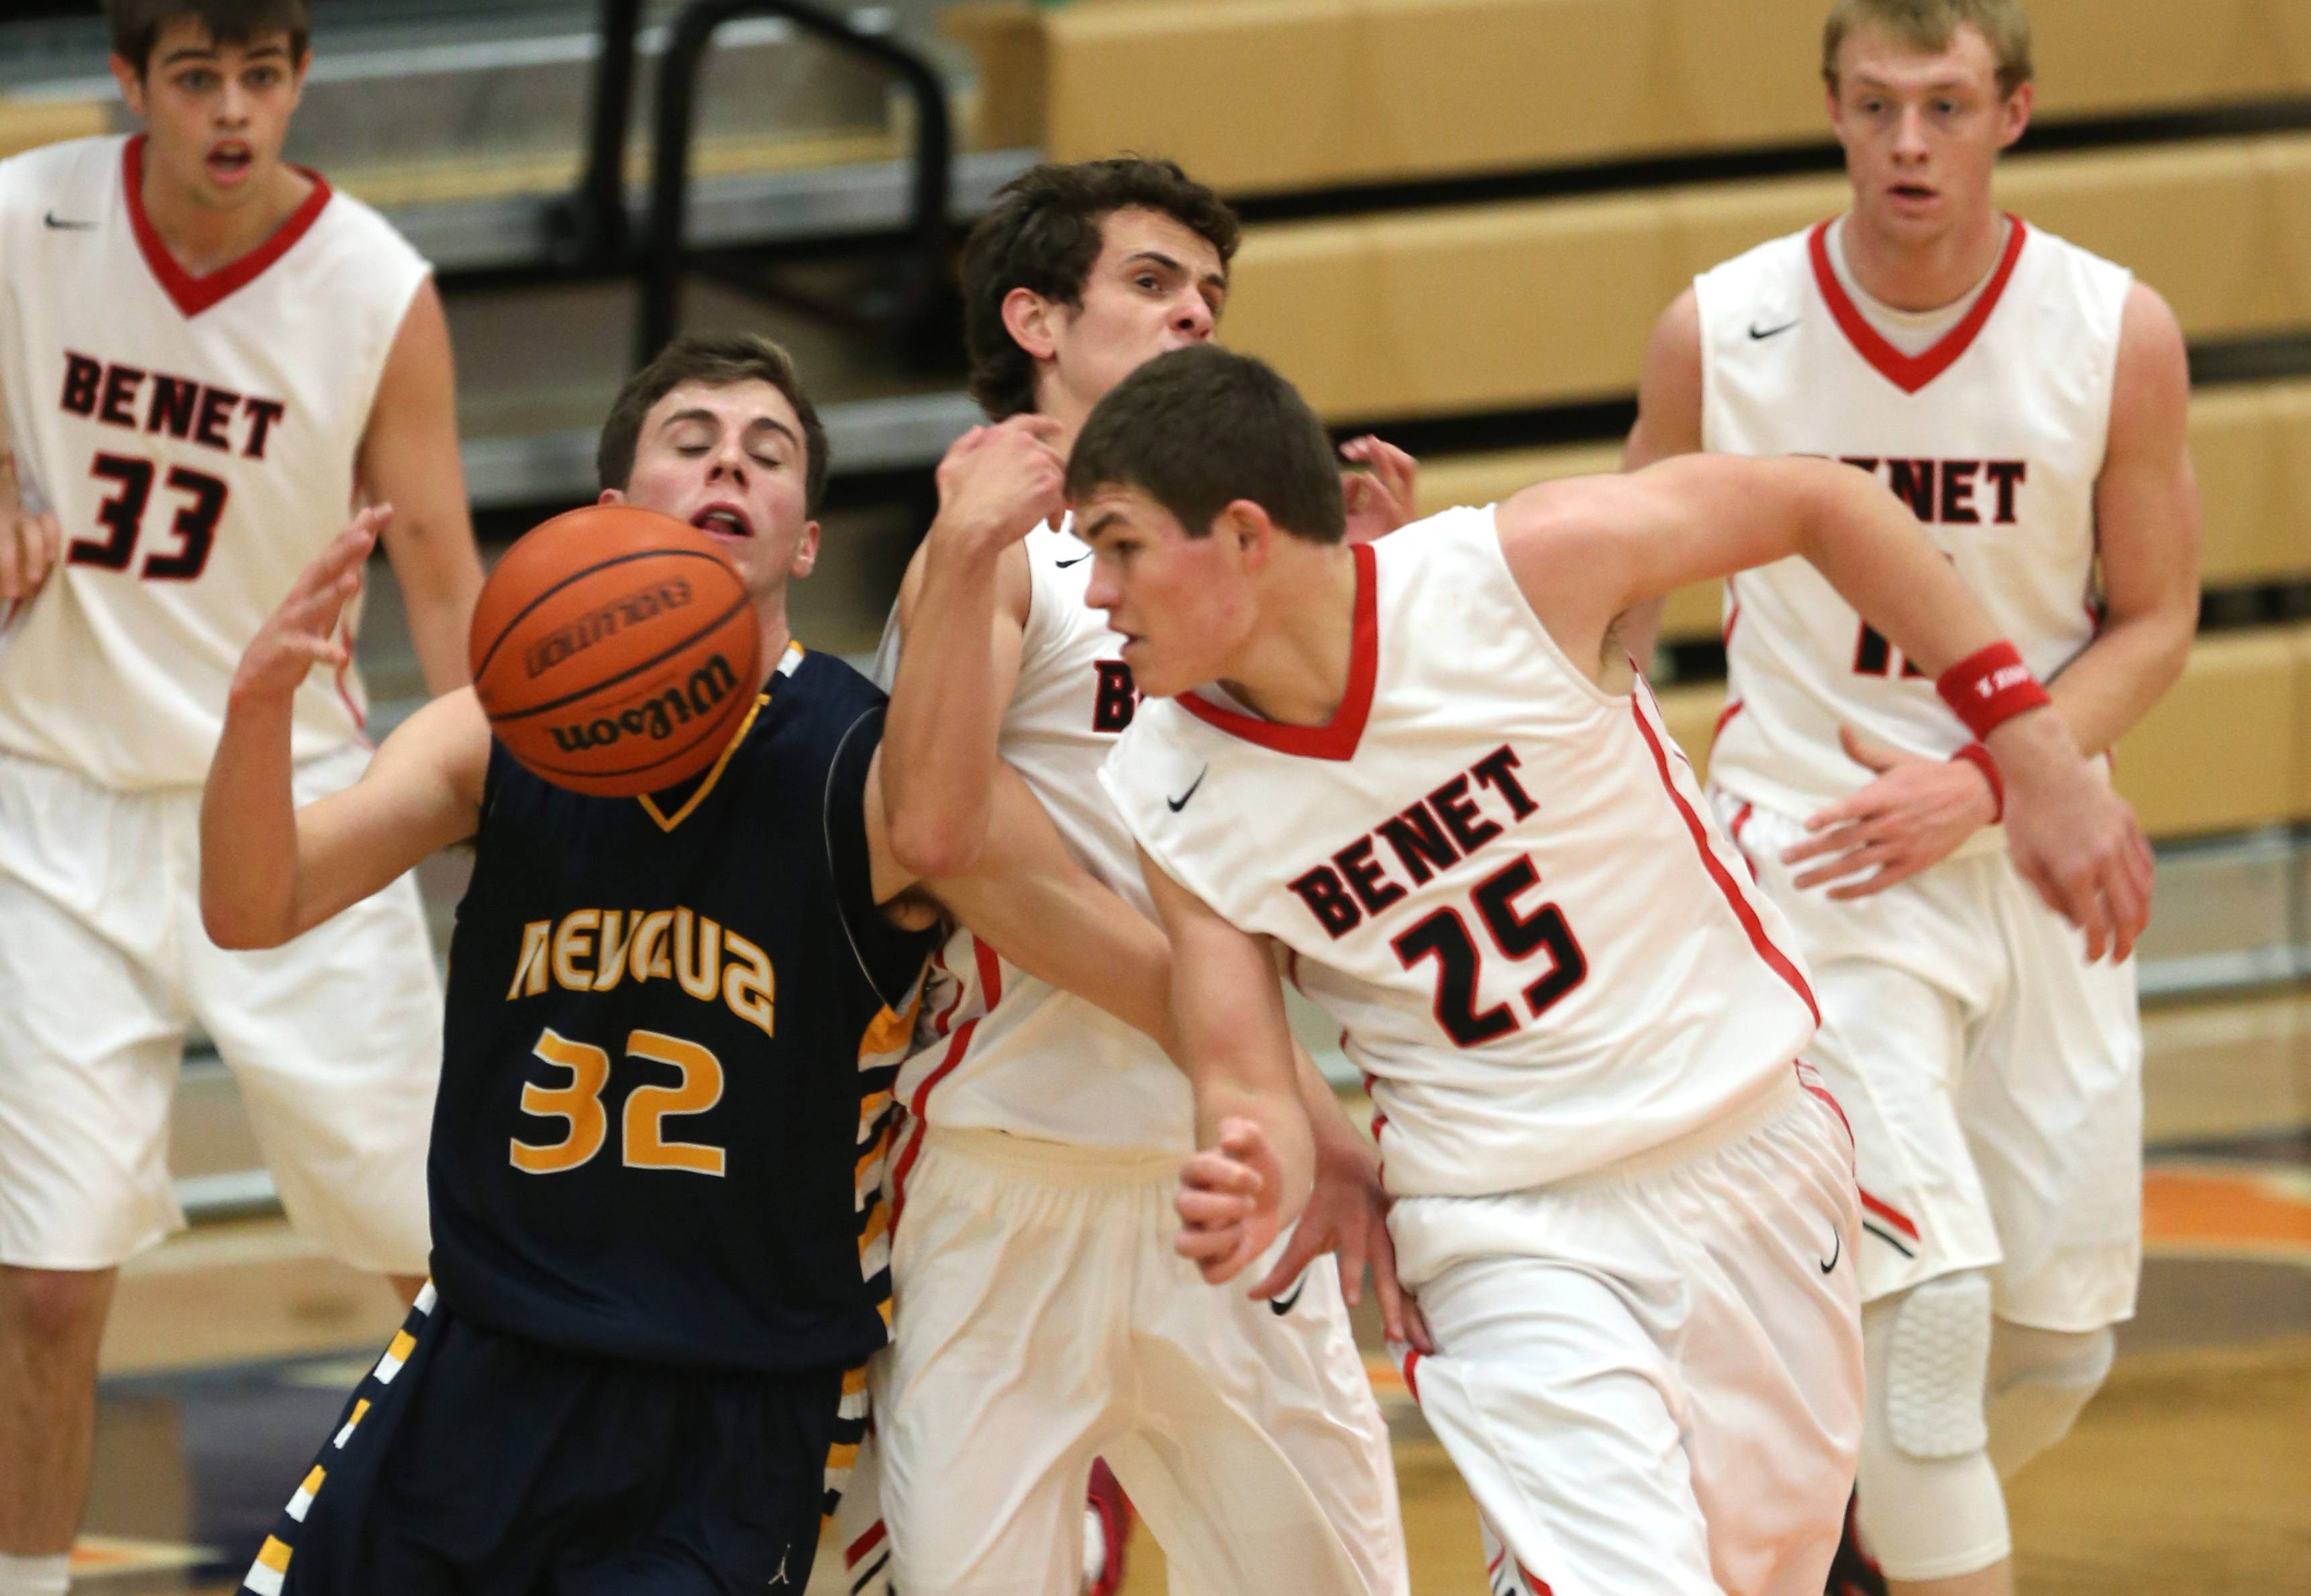 Neuqua Valley's Connor Raridon, left, looks to gain possession while guarded by Benet's Sean Liska, center, and James Dockery, right, during the Hoops for Healing boys basketball tournament at Oswego High School.